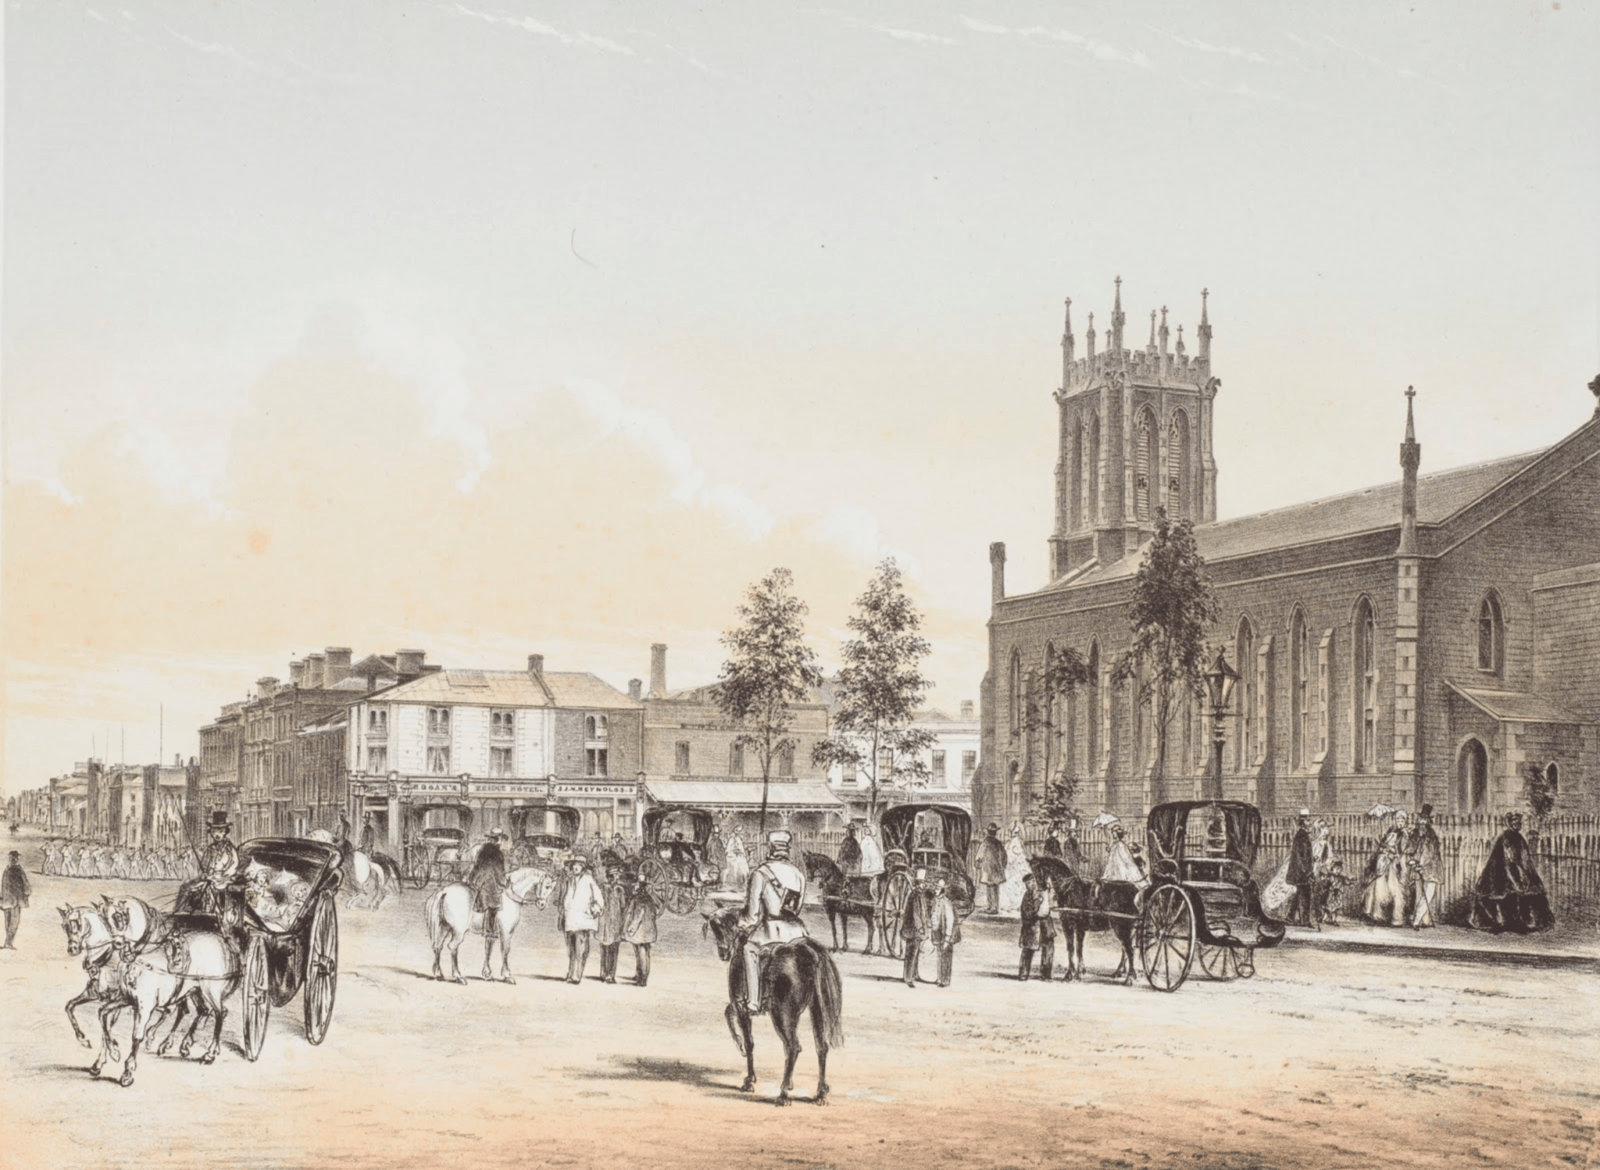 Shows streetscape of Flinders Street, looking west, with Bridge Hotel (now known as Young and Jackson's Hotel) on far corner, St. Paul's Cathedral on opposite corner, horsedrawn vehicles and pedestrians.